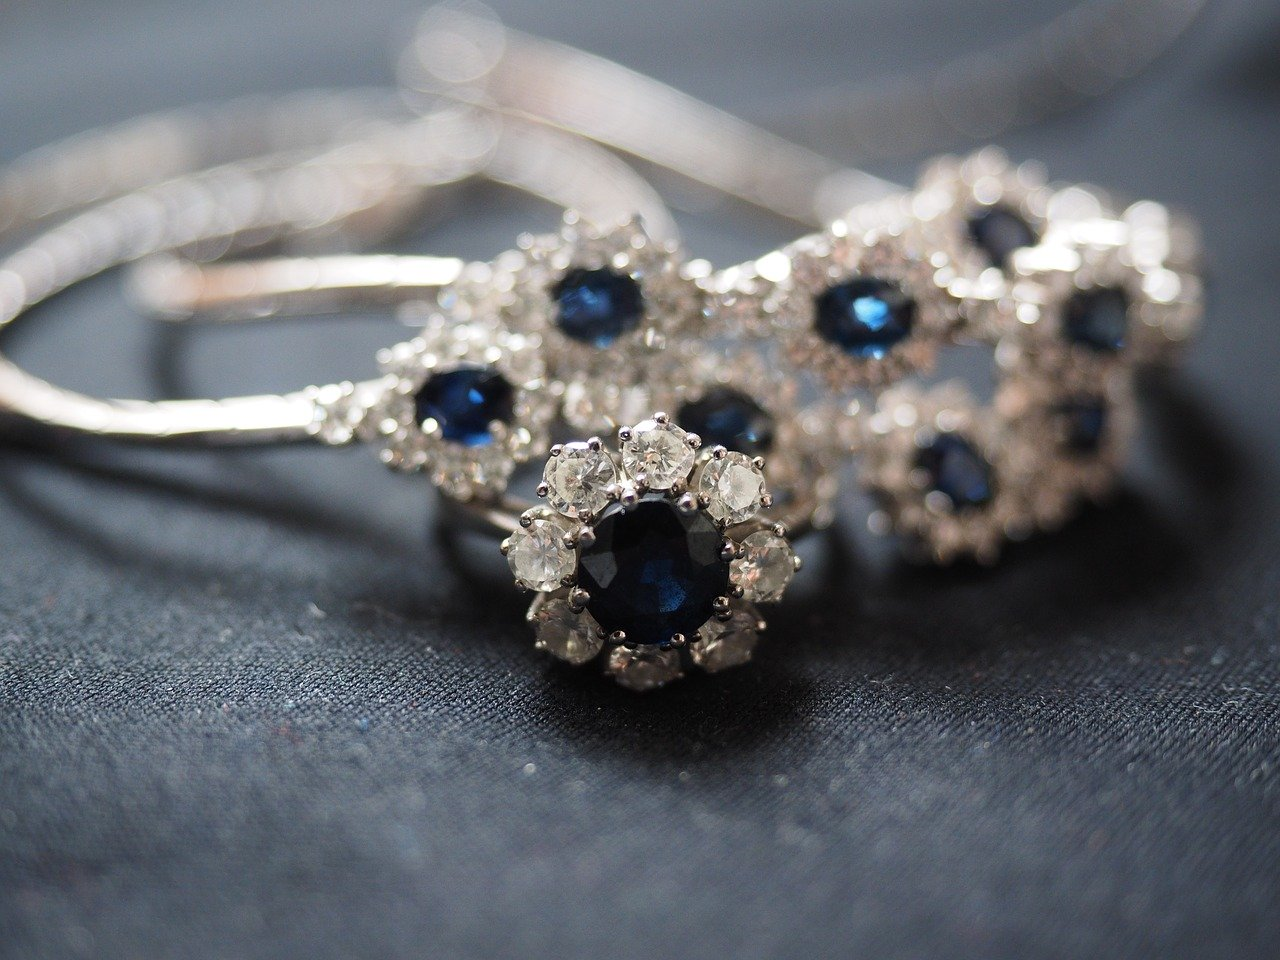 How to Take Care of Your Jewelry